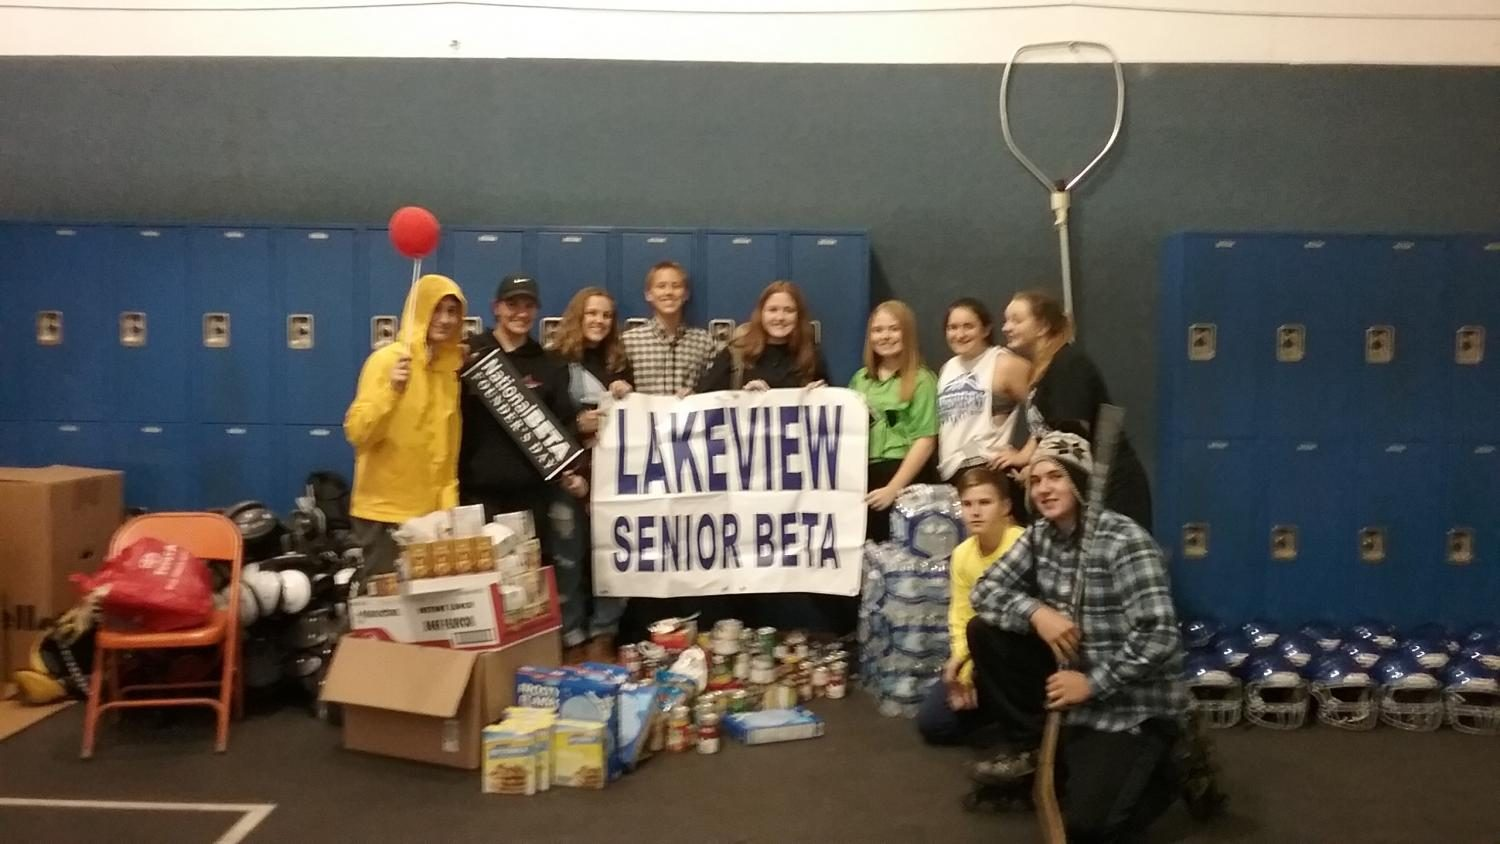 Pictured: The winning group who collected 464 items.